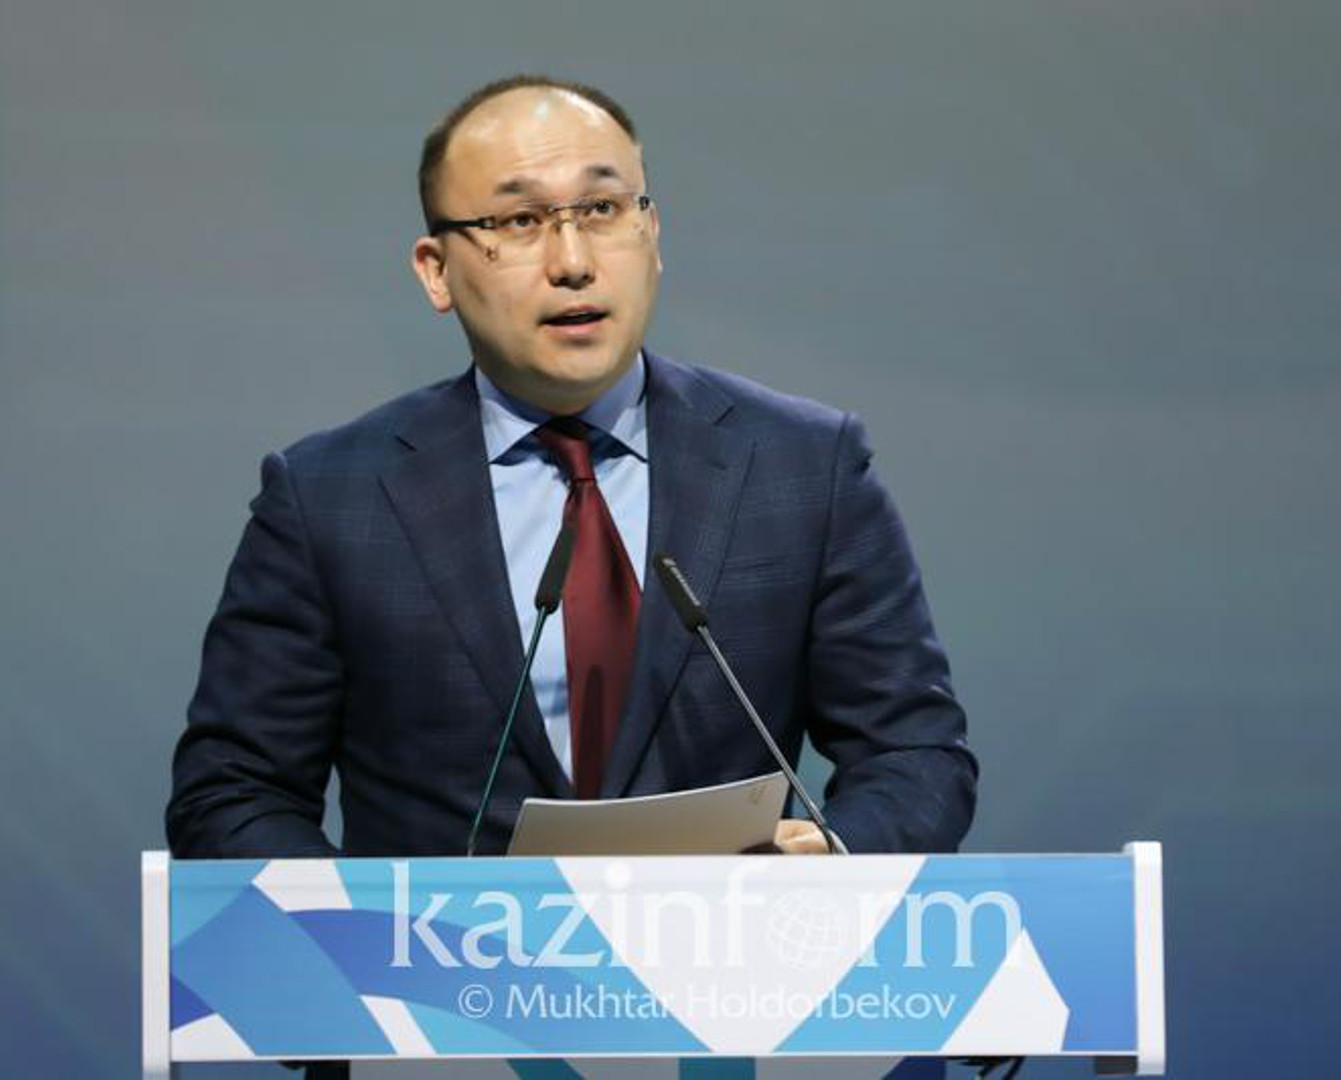 Kazakhstan wants to become a digital bridge between Asia and Europe - Minister Abayev